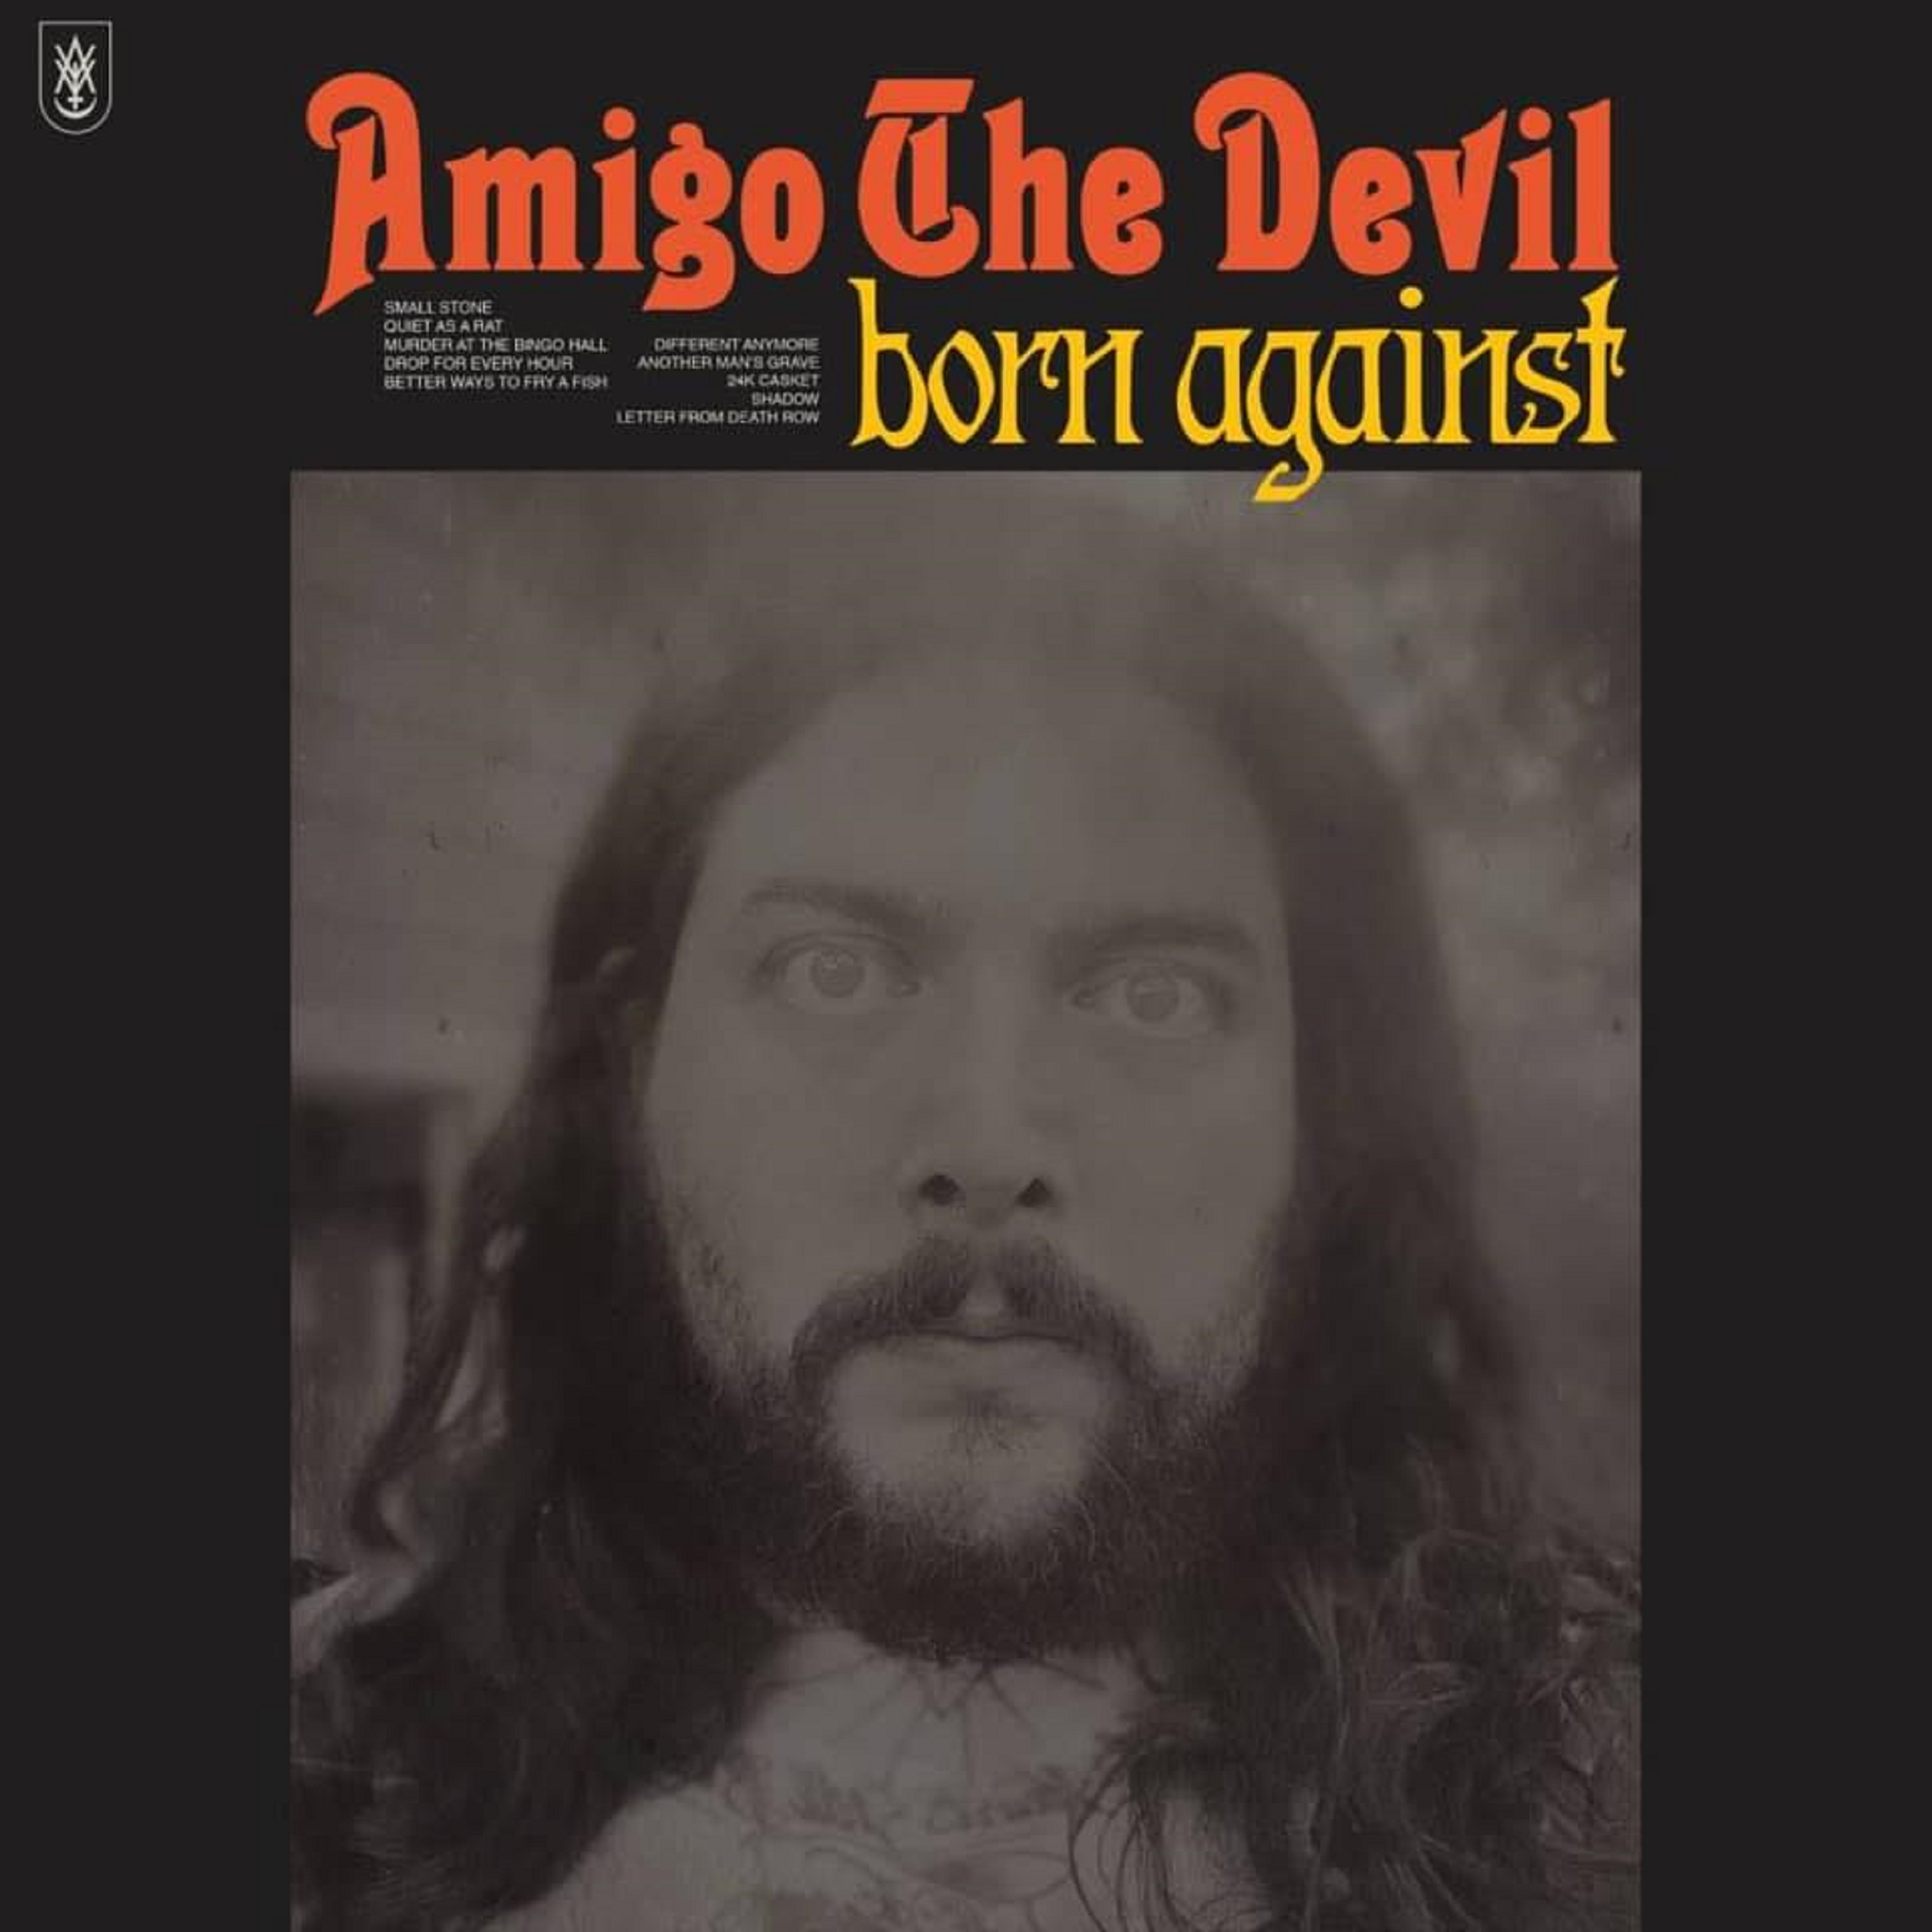 New Amigo The Devil Track/Video Out Today